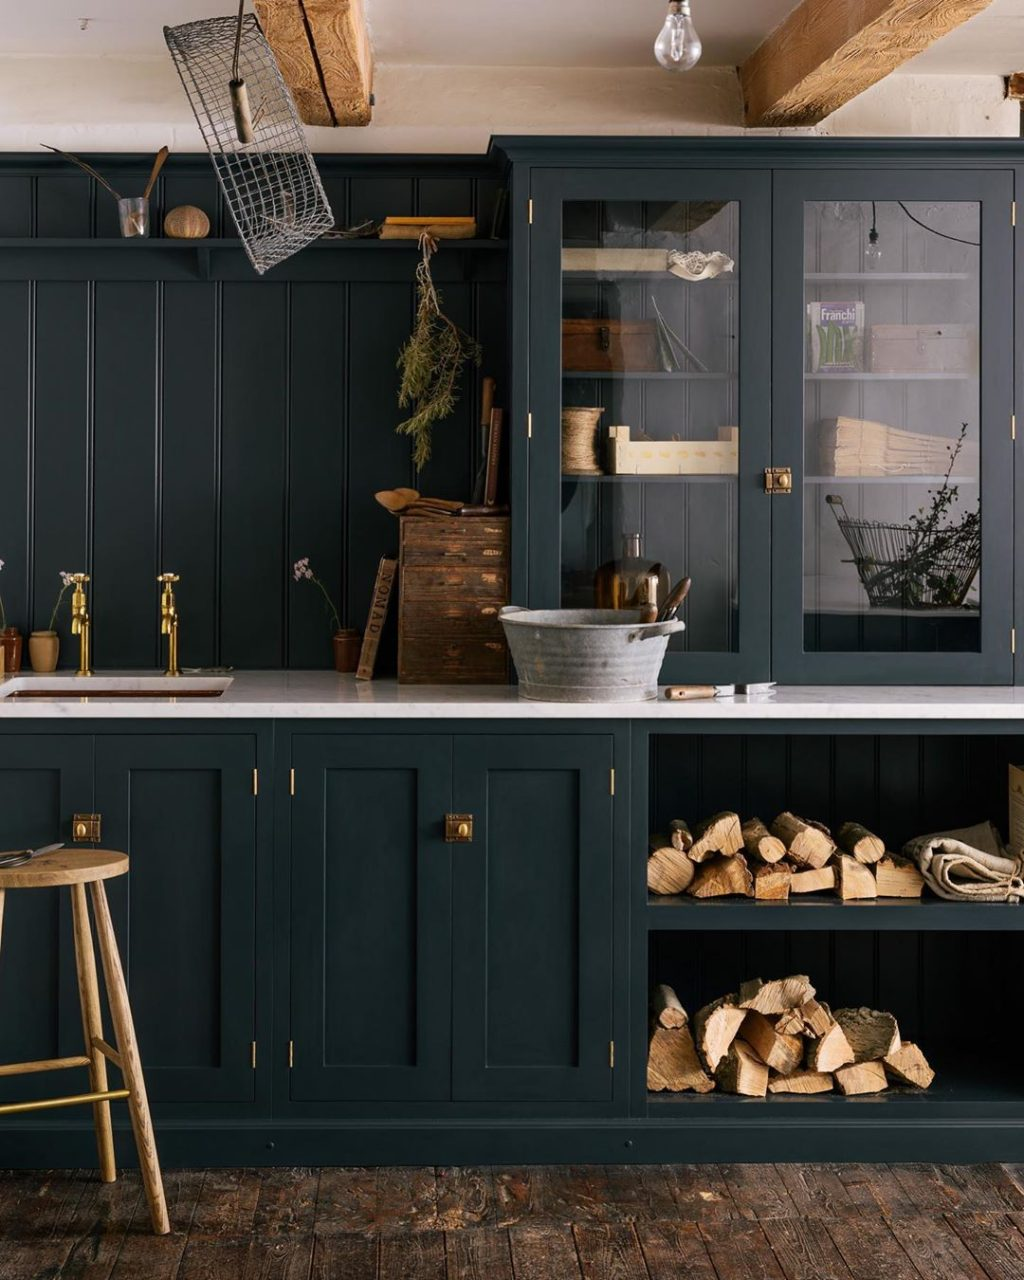 Kitchen Cabinet Colors: Colors We're Considering For Our Phase 1 Kitchen Cabinets